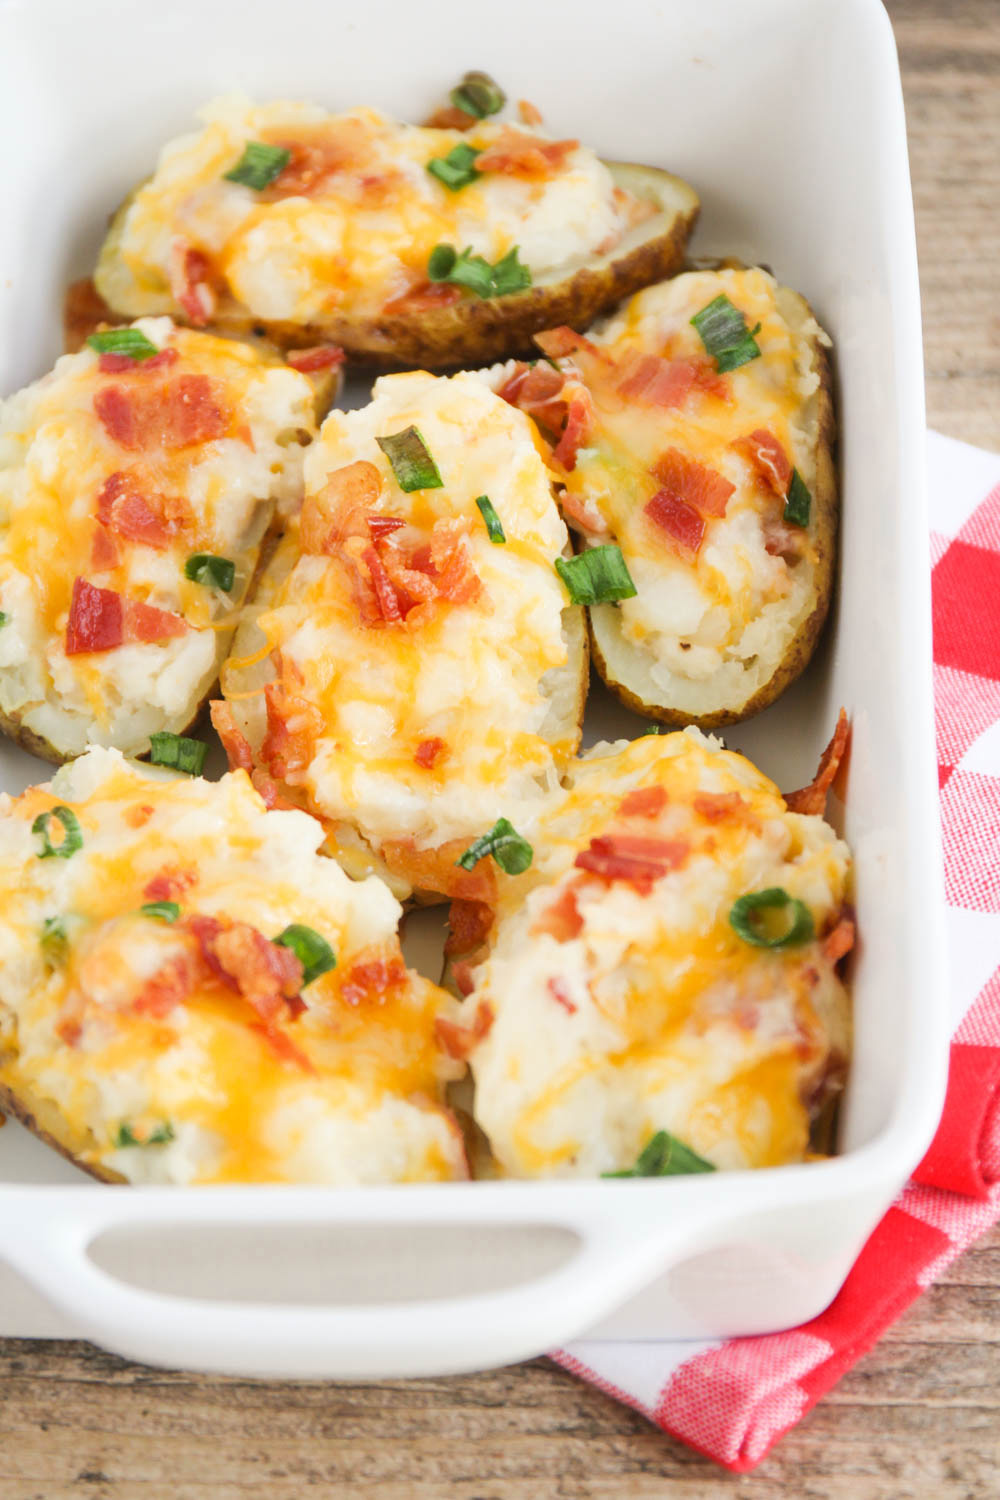 These loaded twice baked potatoes are packed with bacon, cheddar, and sour cream. They're incredibly delicious and so easy to make!